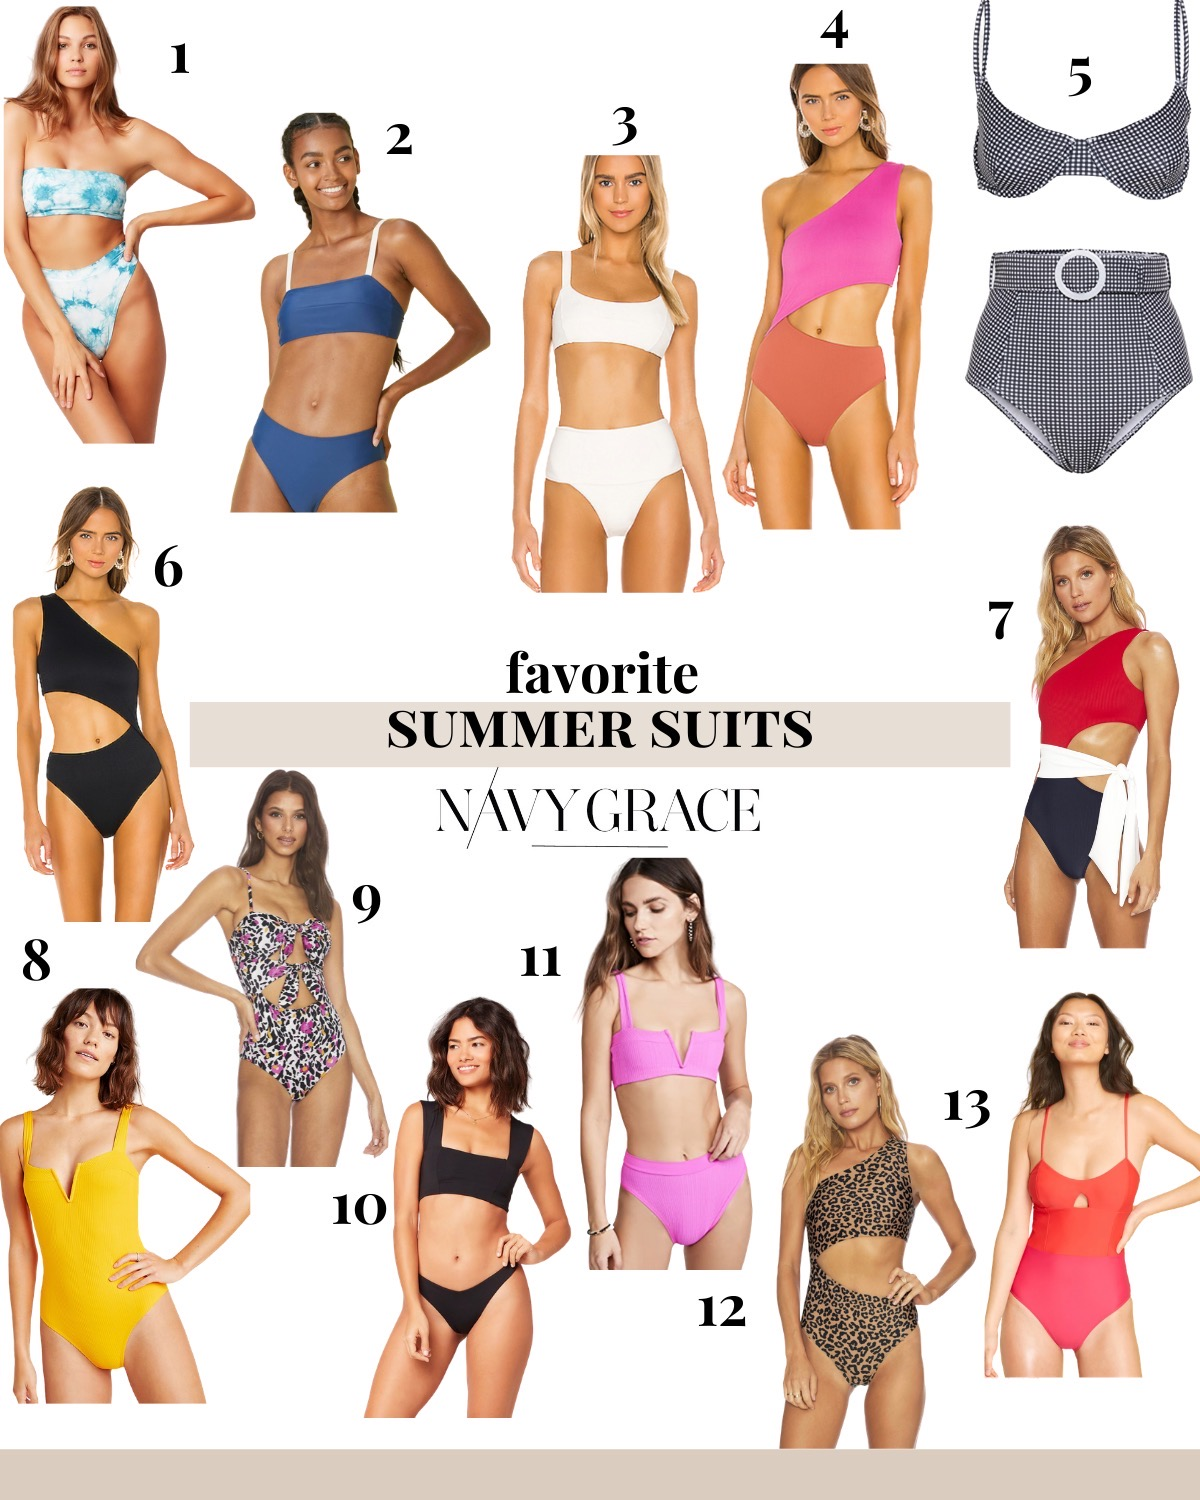 Summer Swimsuits by popular San Diego fashion blog, Navy Grace: collage image of a blue tie dye bikini, SummerSalt bikini top and bottoms, White Bikini, Beach Riot Pink and Coral One Piece, Gingham bikini, Black Beach Riot One Piece,  Red, White, and Blue One Piece, L Space Yellow One Piece, Floral Leopard One Piece, L Space Black Parker Top and bottoms, Pink Lee Lee Bikini, Leopard Asymmetrical Swimsuit, and Summersalt The Swan Dive.